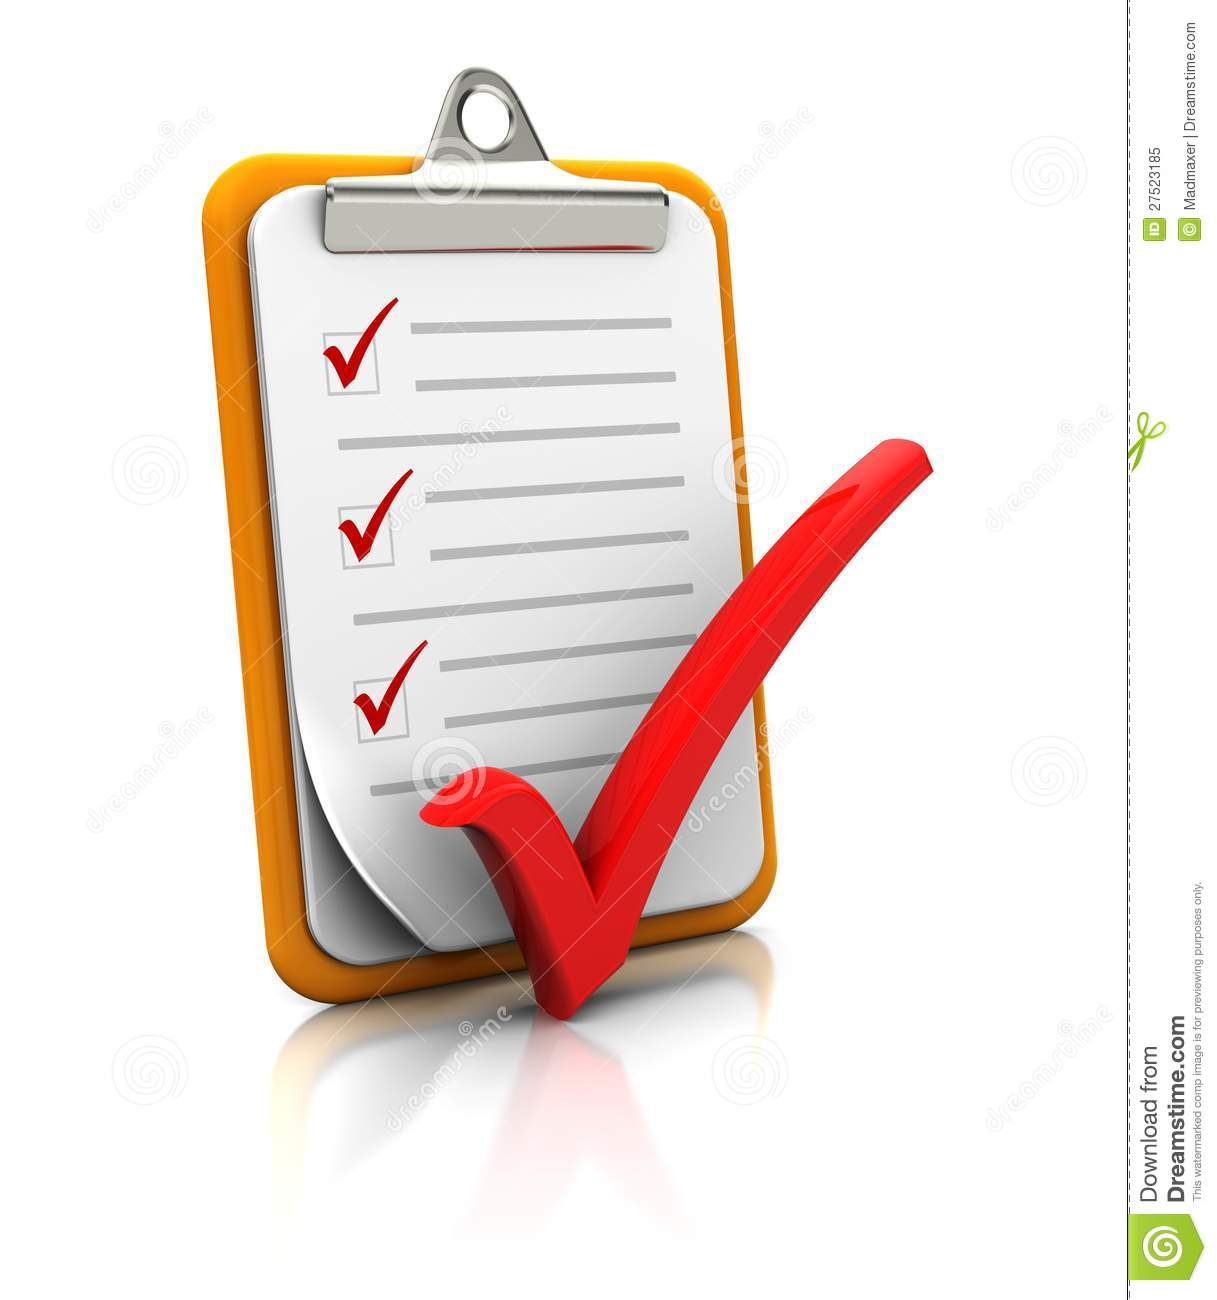 Clipboard With Checklist Royalty Free Stock Photo - Image: 27523185